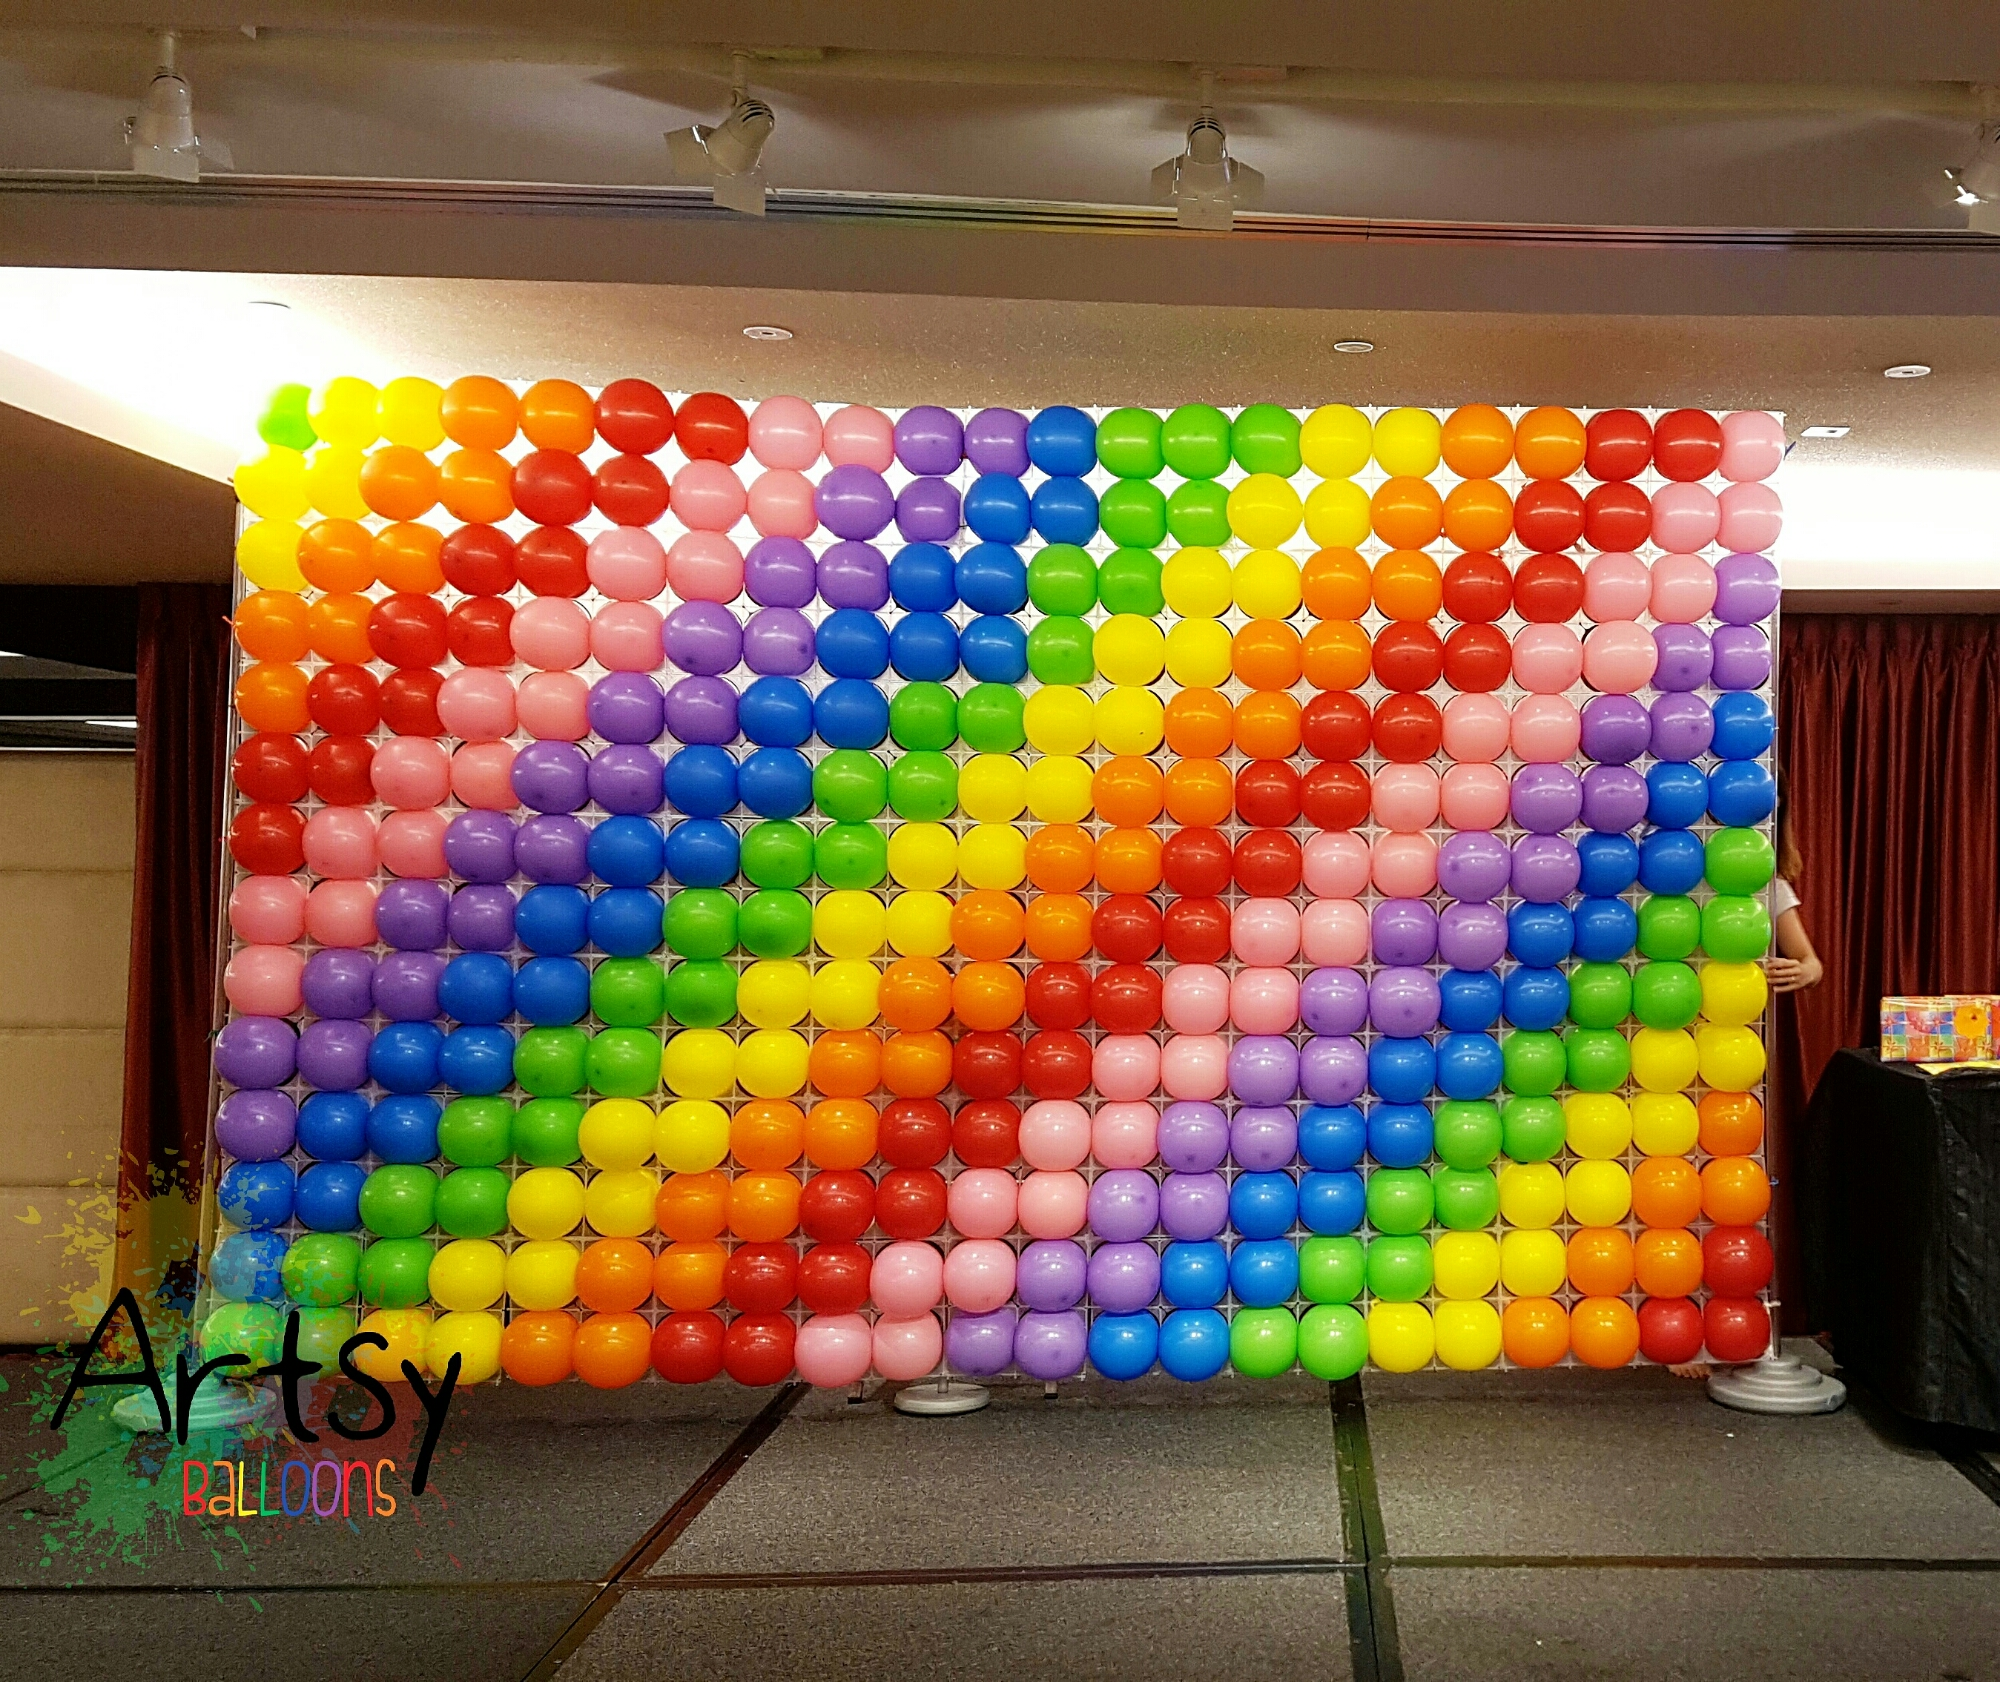 Balloon decoration service artsyballoons singapore for Balloon decoration design